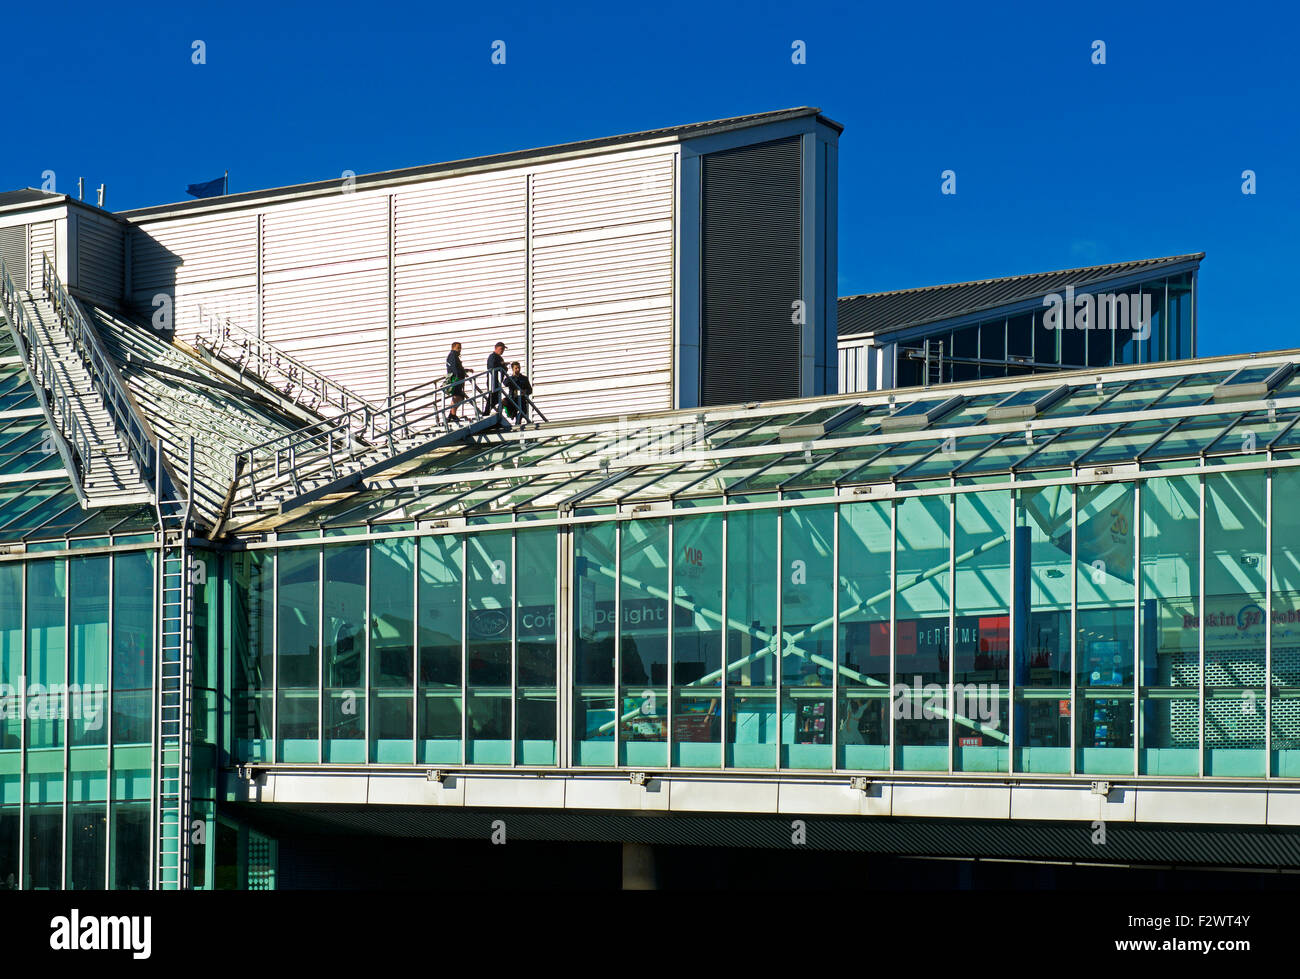 Three workmen on the roof the the Princes Quay shopping centre, Kingston Three Hull, East Riding of Yorkshire, England - Stock Image